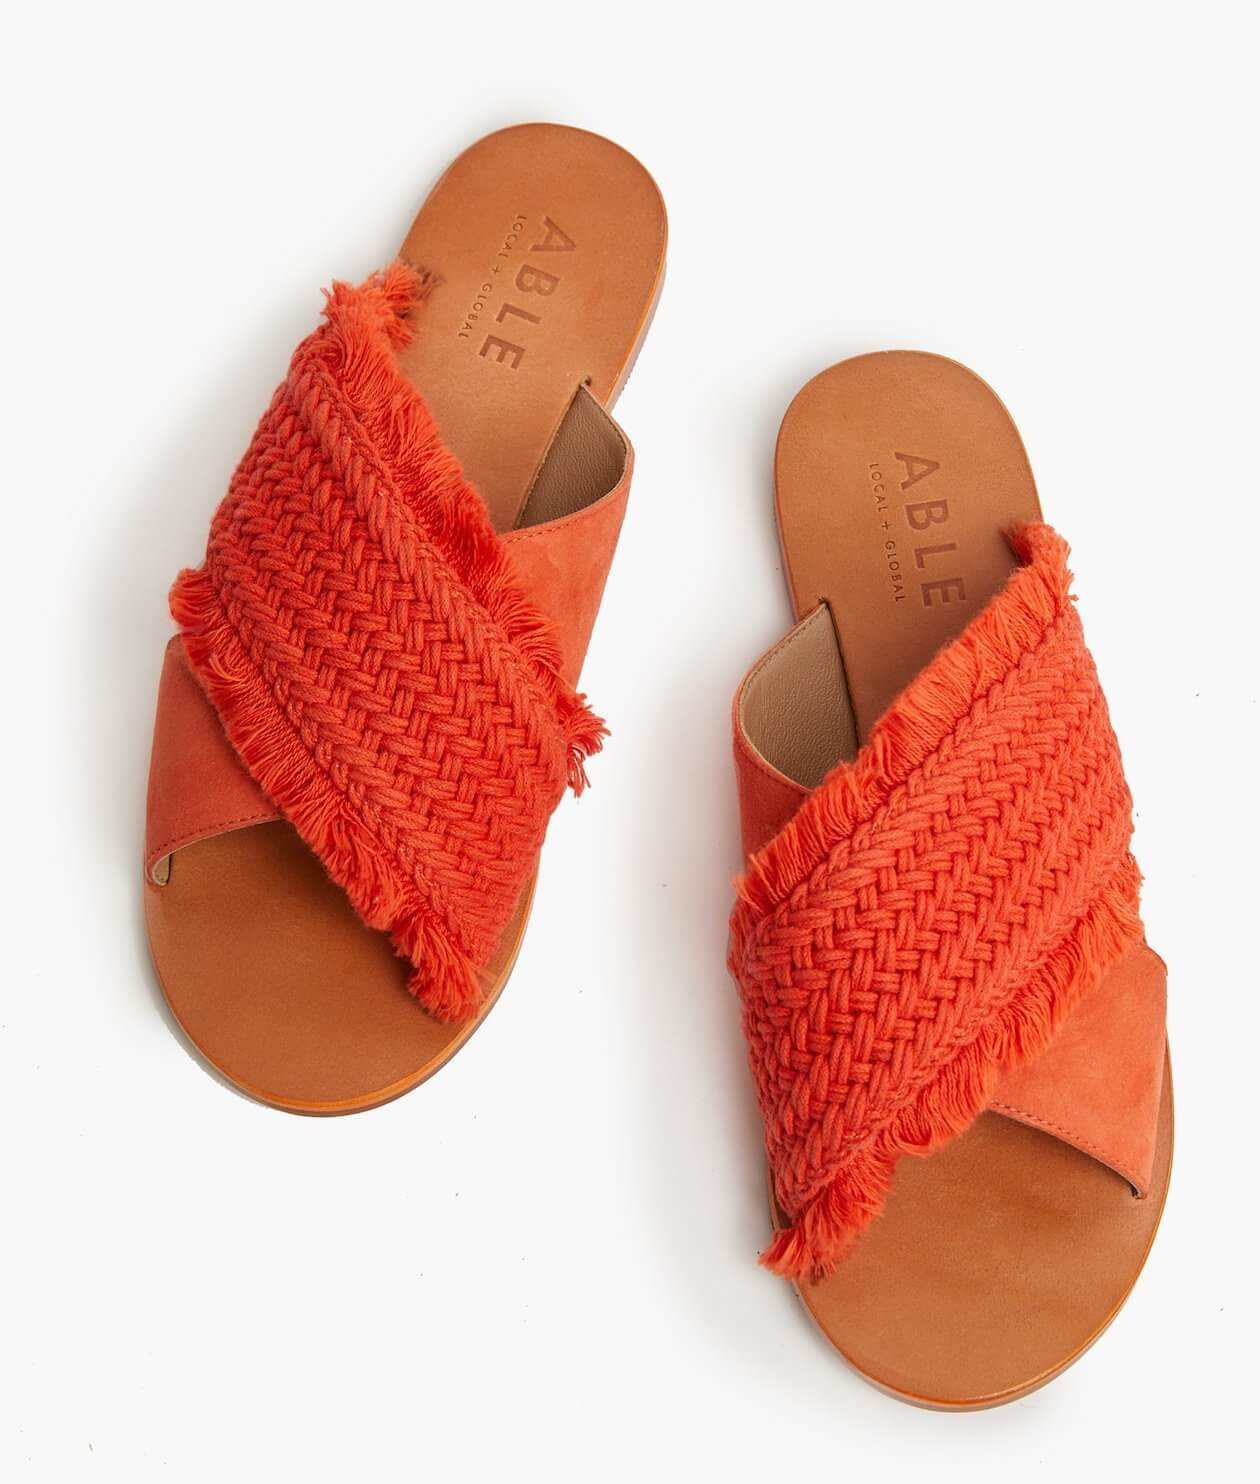 Able Women's Sandals - ethical shoes choice